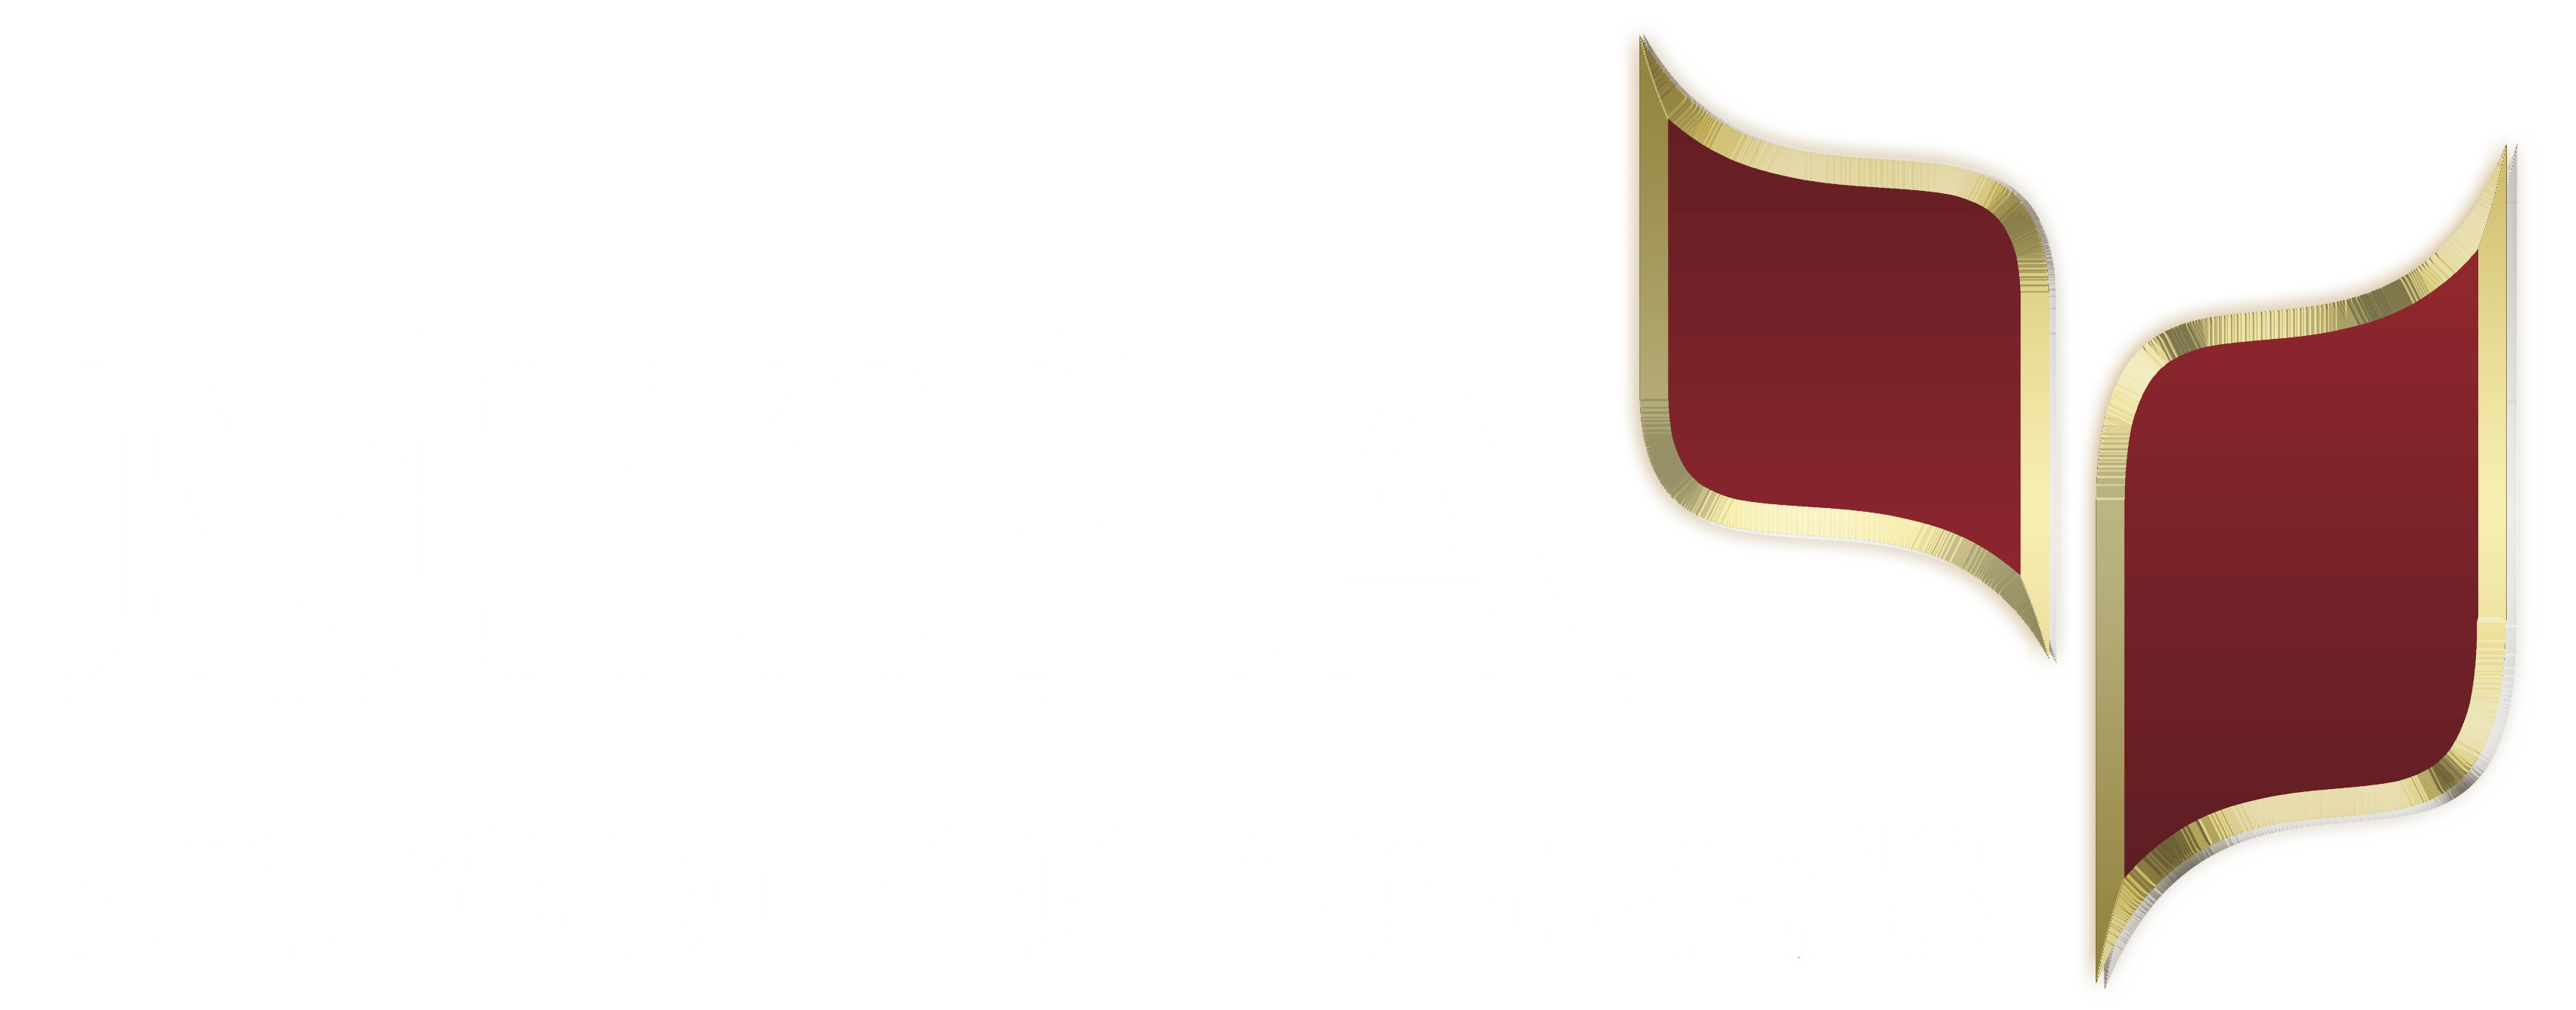 MYRA School of Business